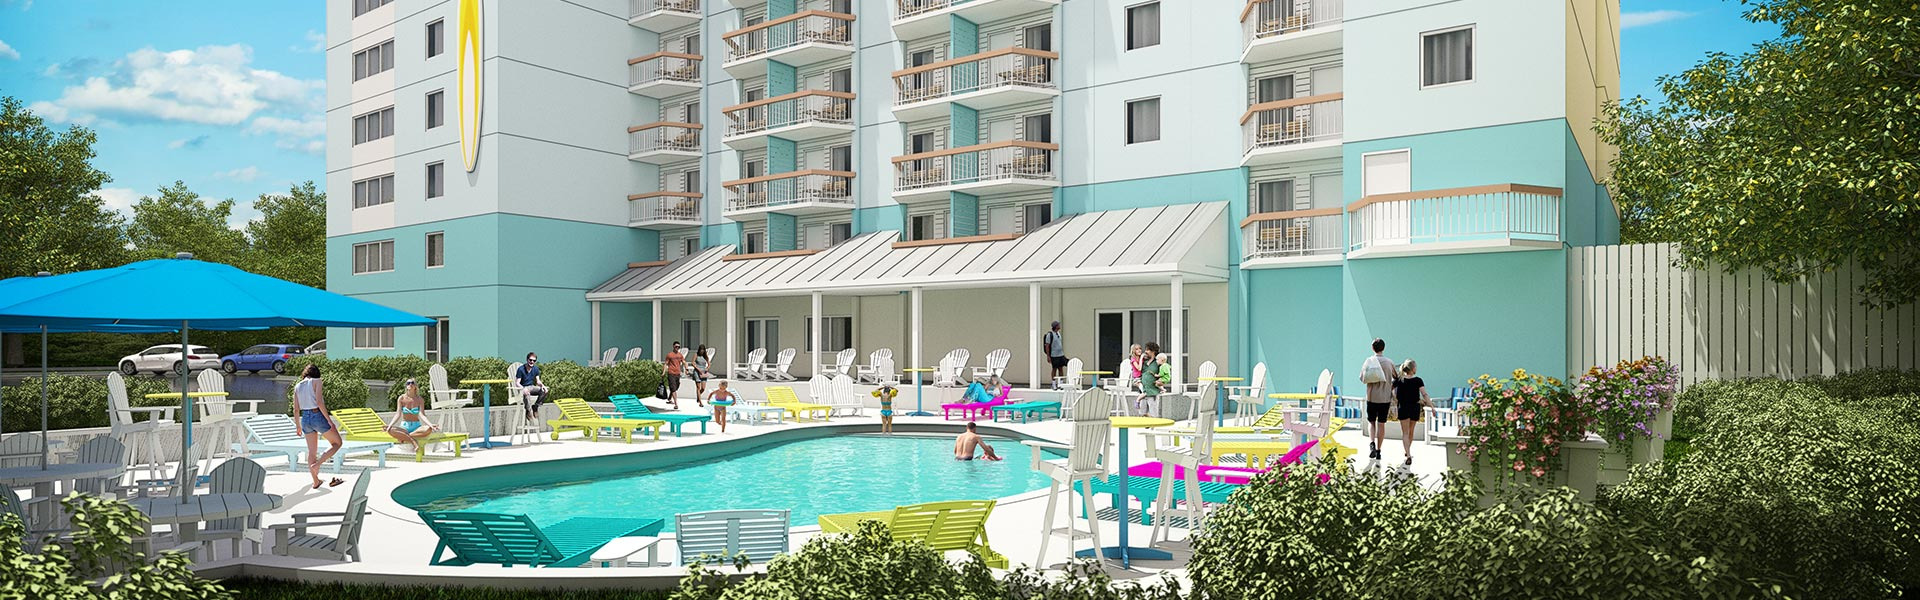 About Margaritaville Island Inn